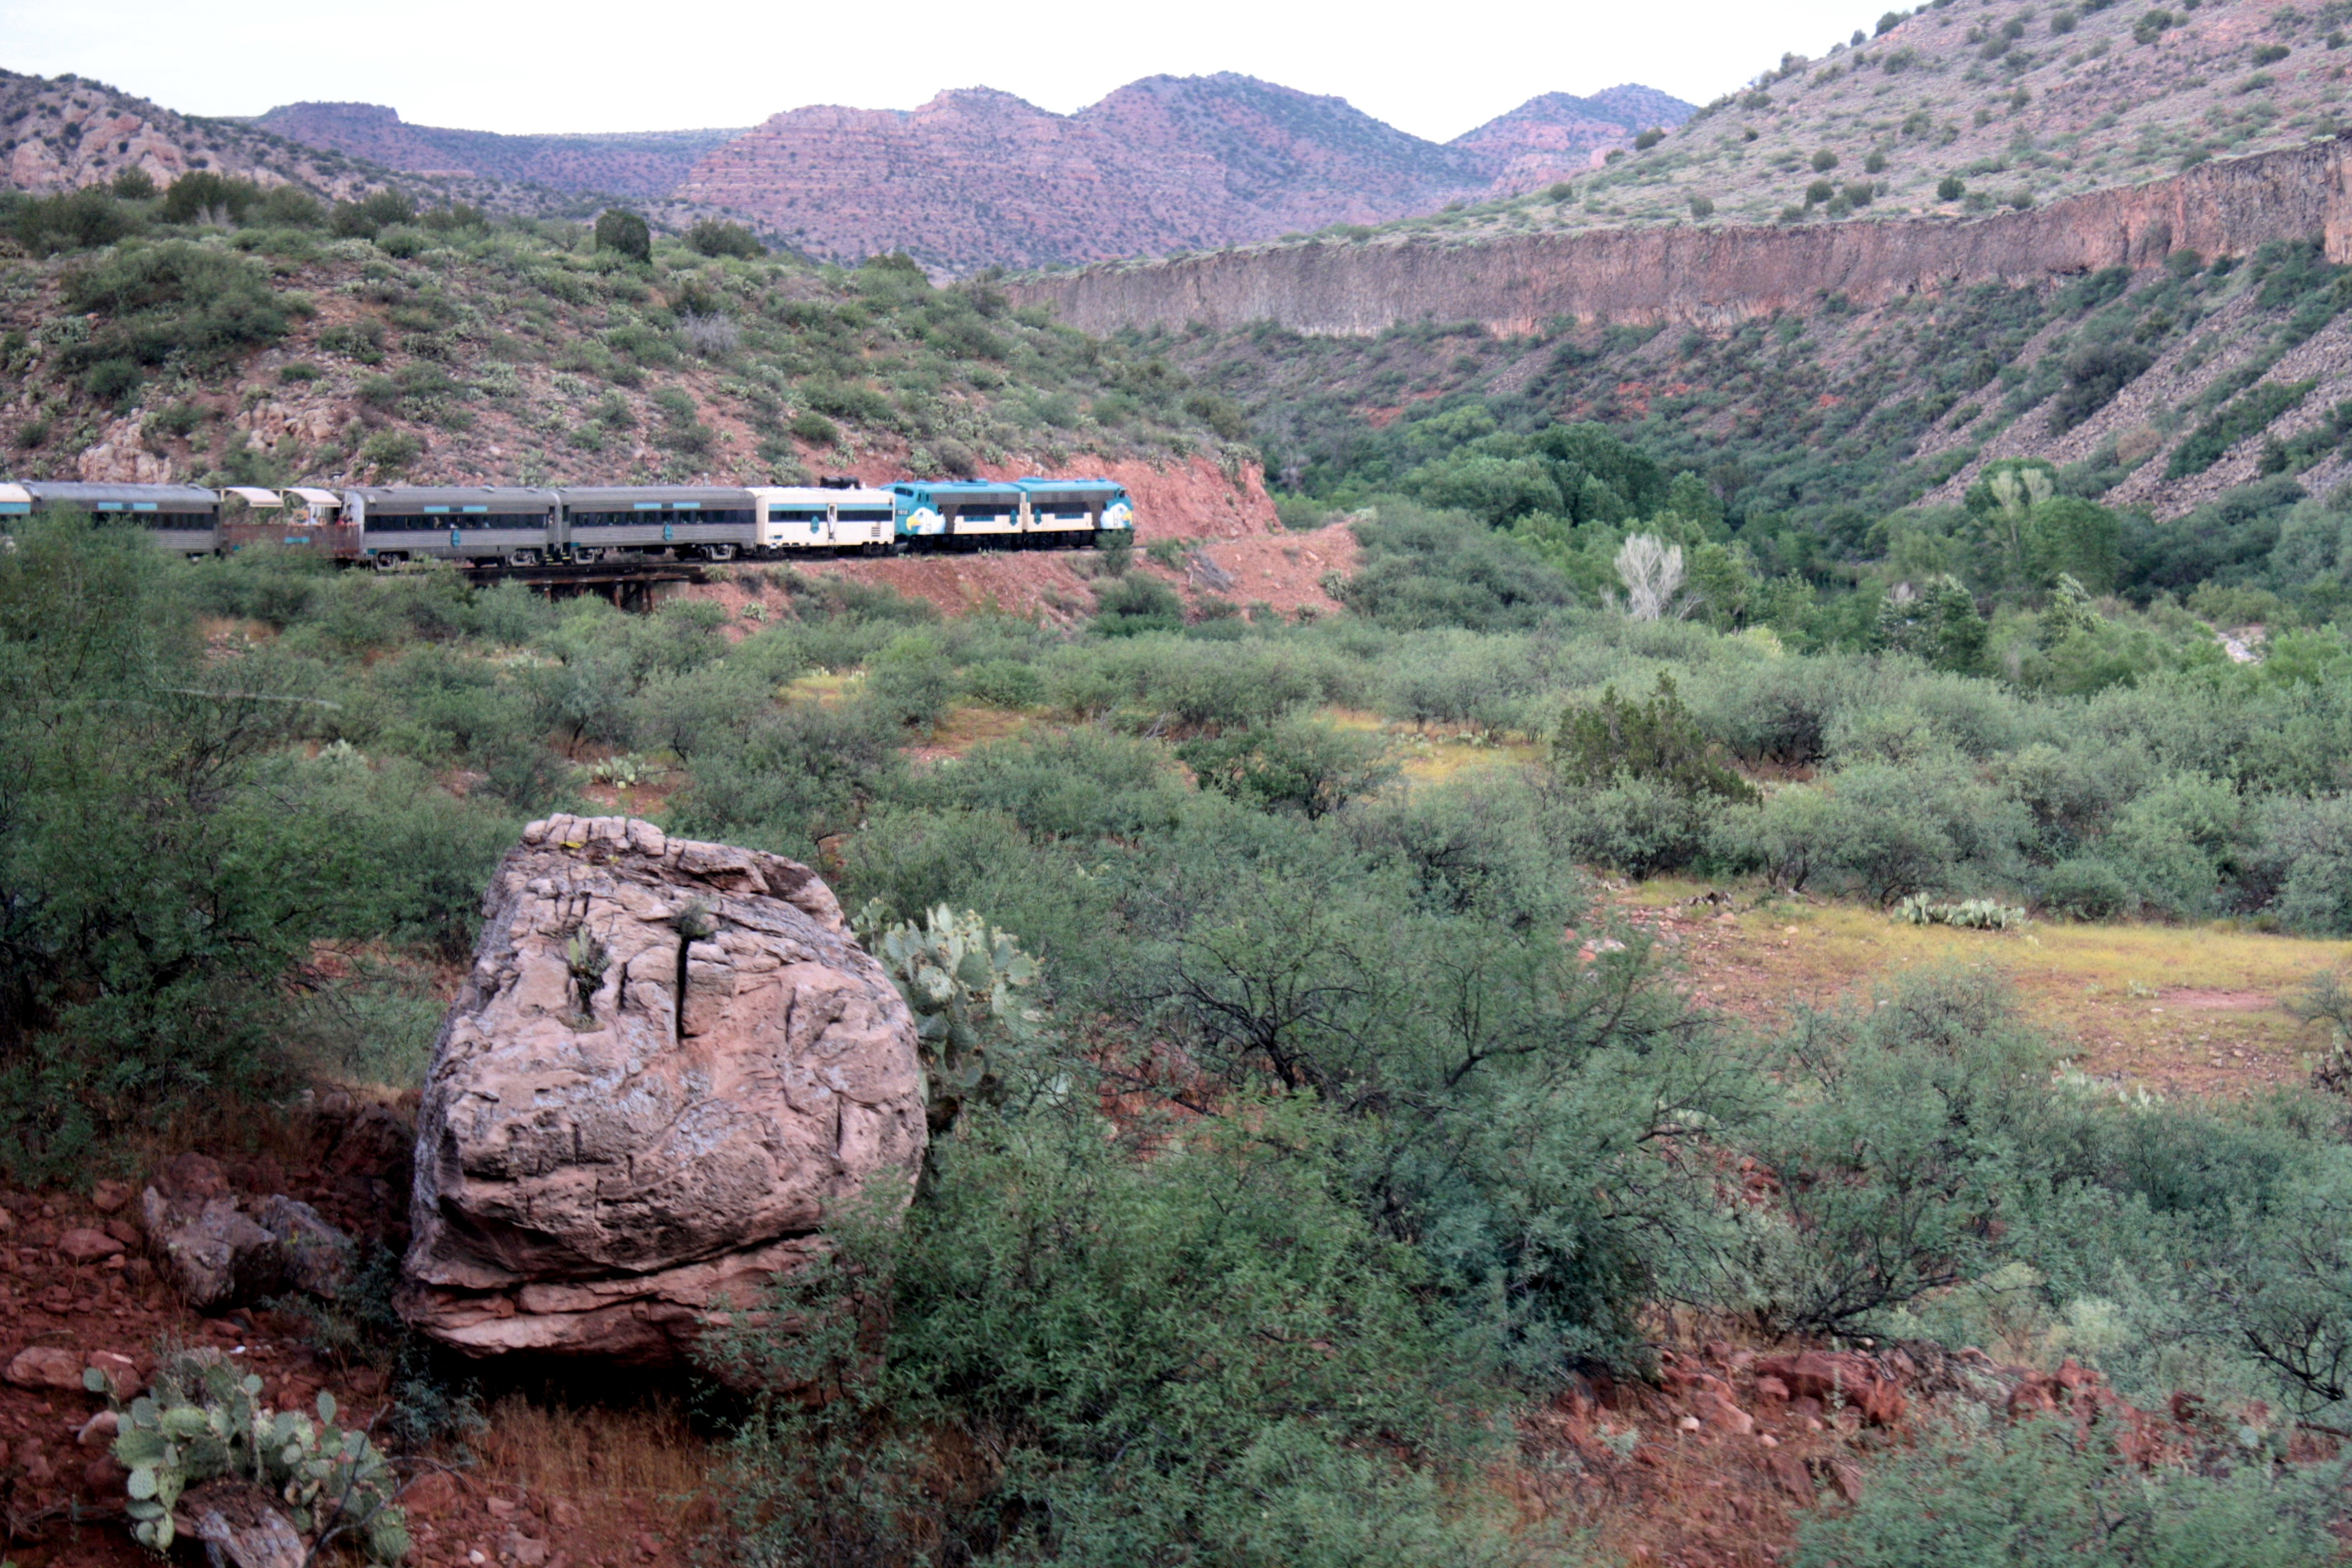 Sunset in Canyon with Train